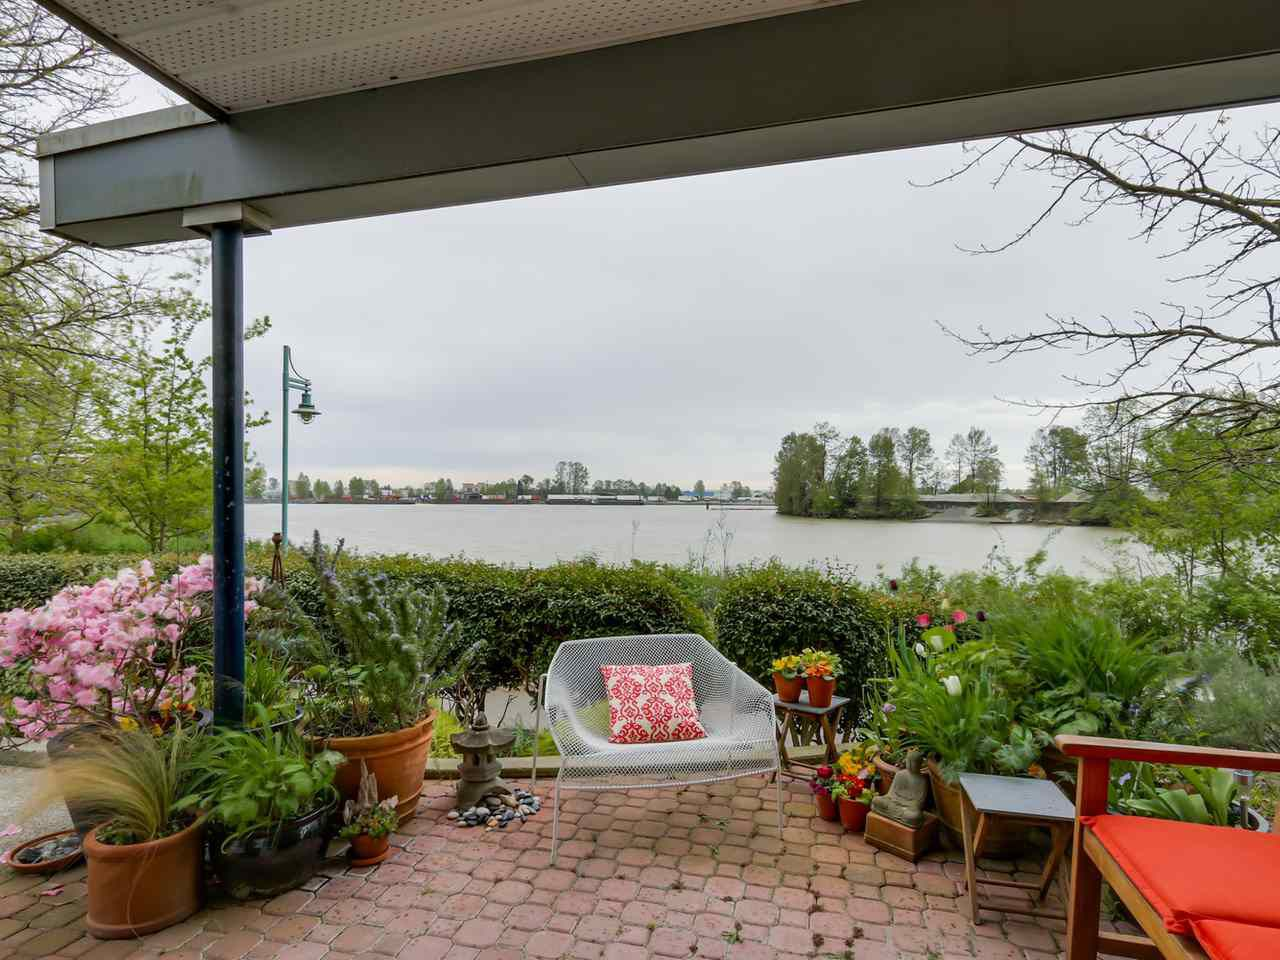 """Main Photo: 108 1880 E KENT AVENUE SOUTH in Vancouver: Fraserview VE Condo for sale in """"PILOT HOUSE AT TUGBOAT LANDING"""" (Vancouver East)  : MLS®# R2057021"""